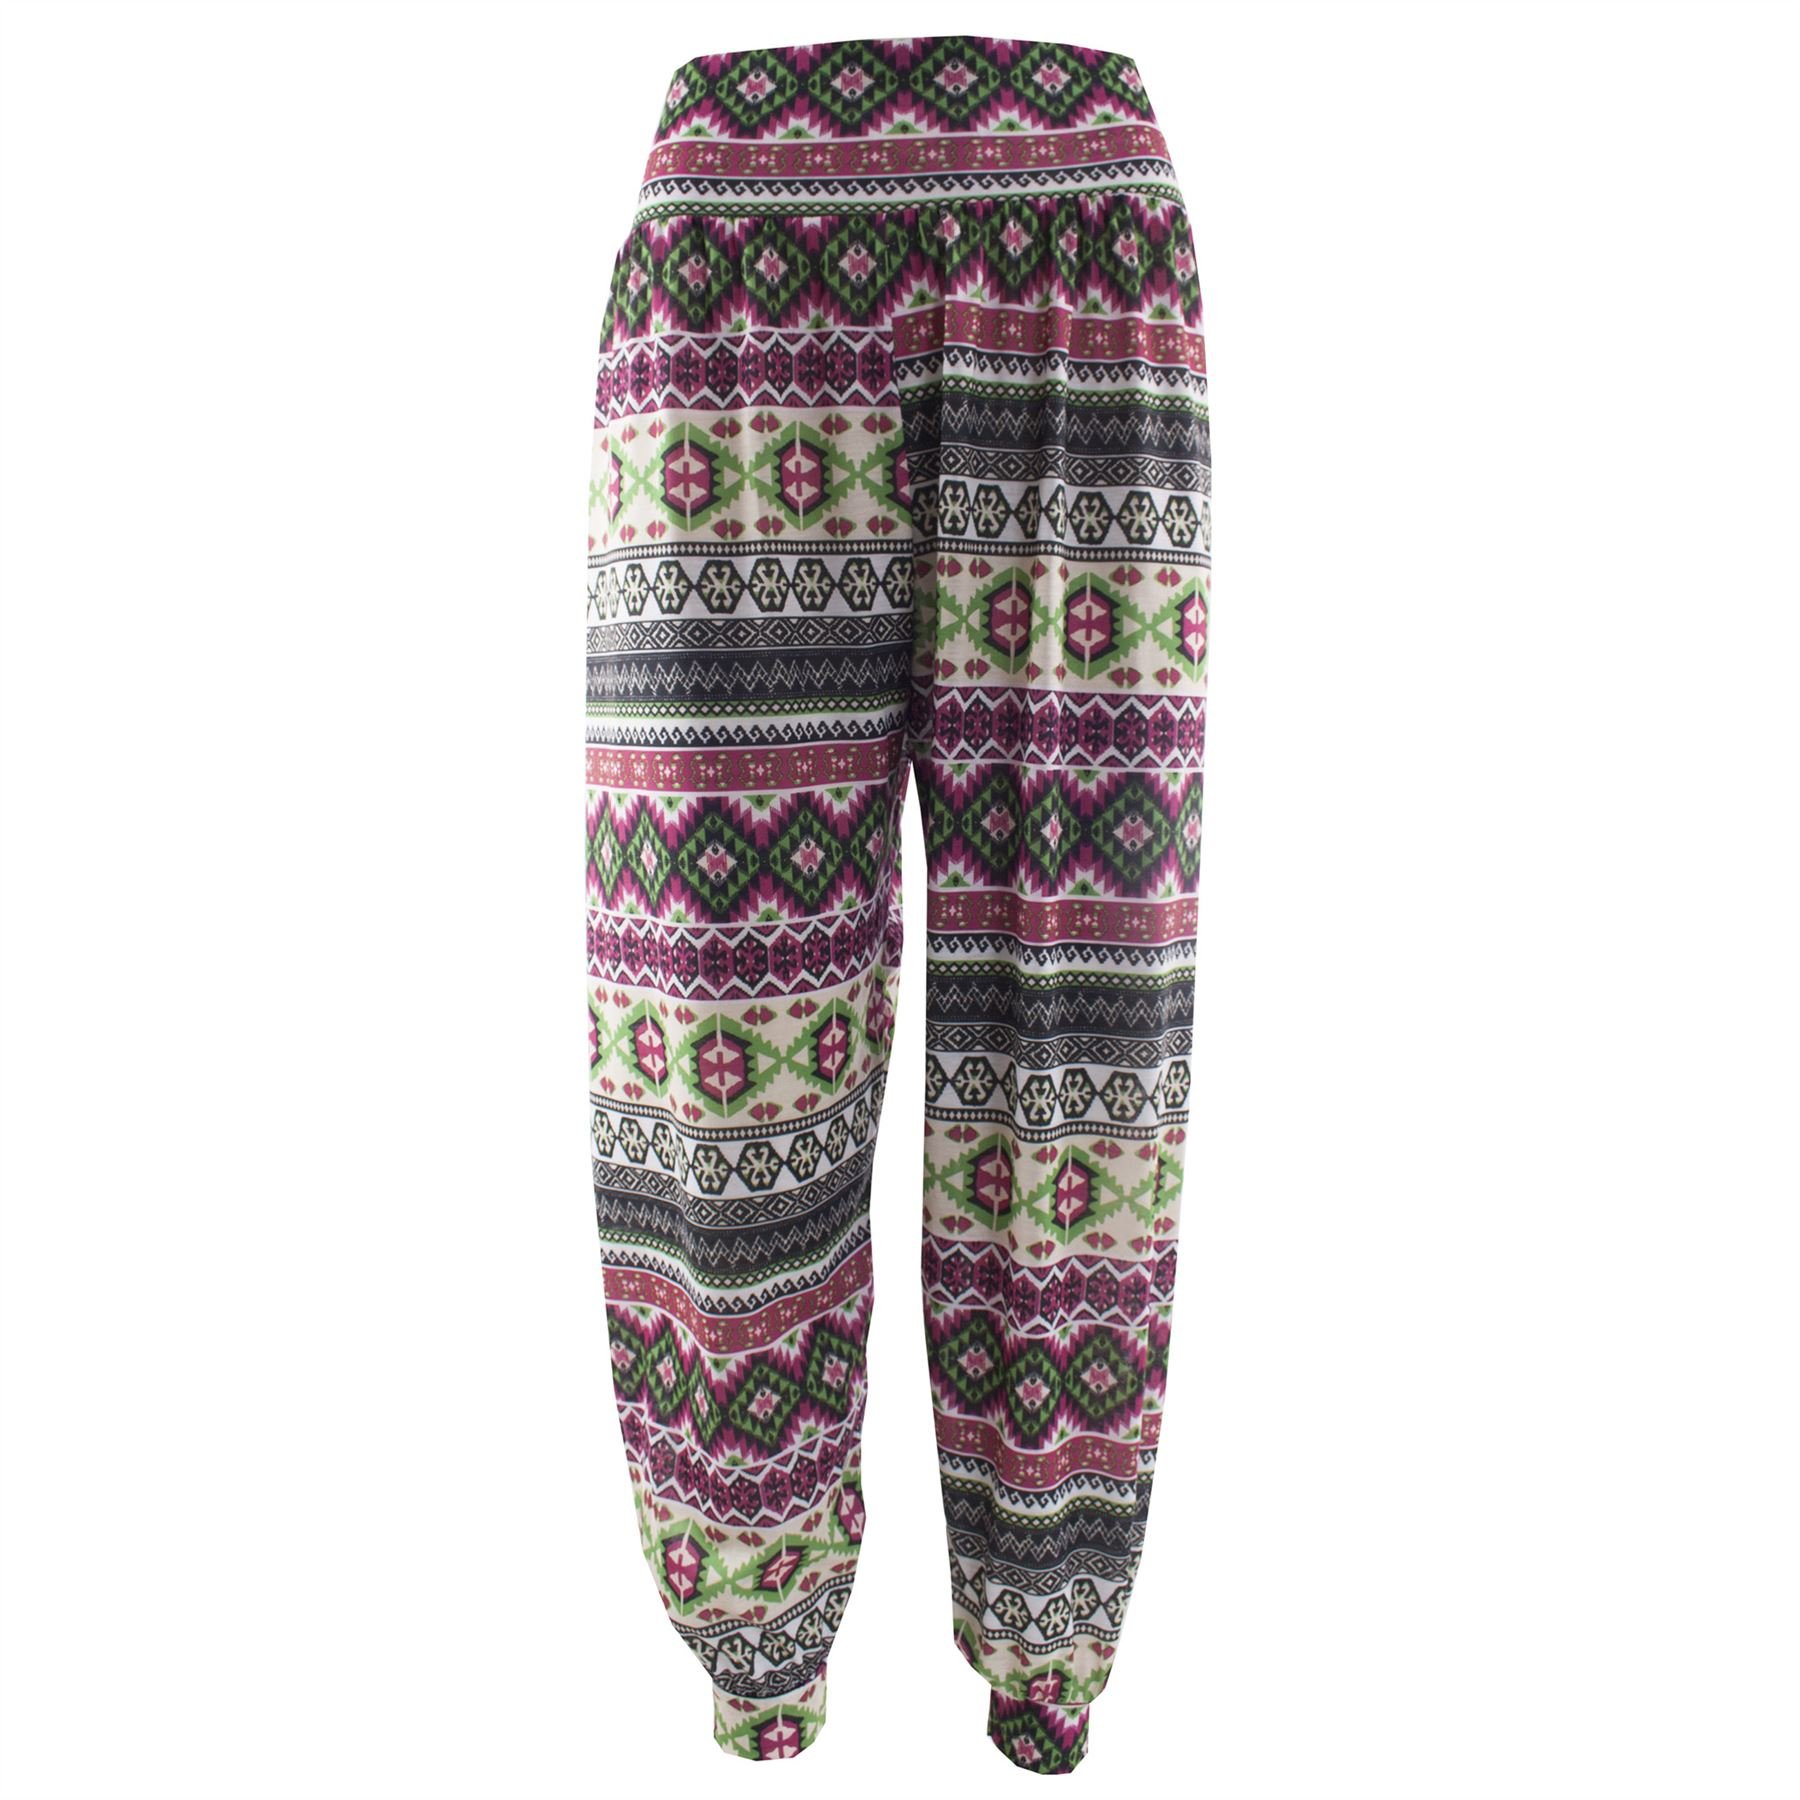 Unique New Womens Ali Baba Trousers Ladies Harem Pants Floral Printed Bottoms Leggin